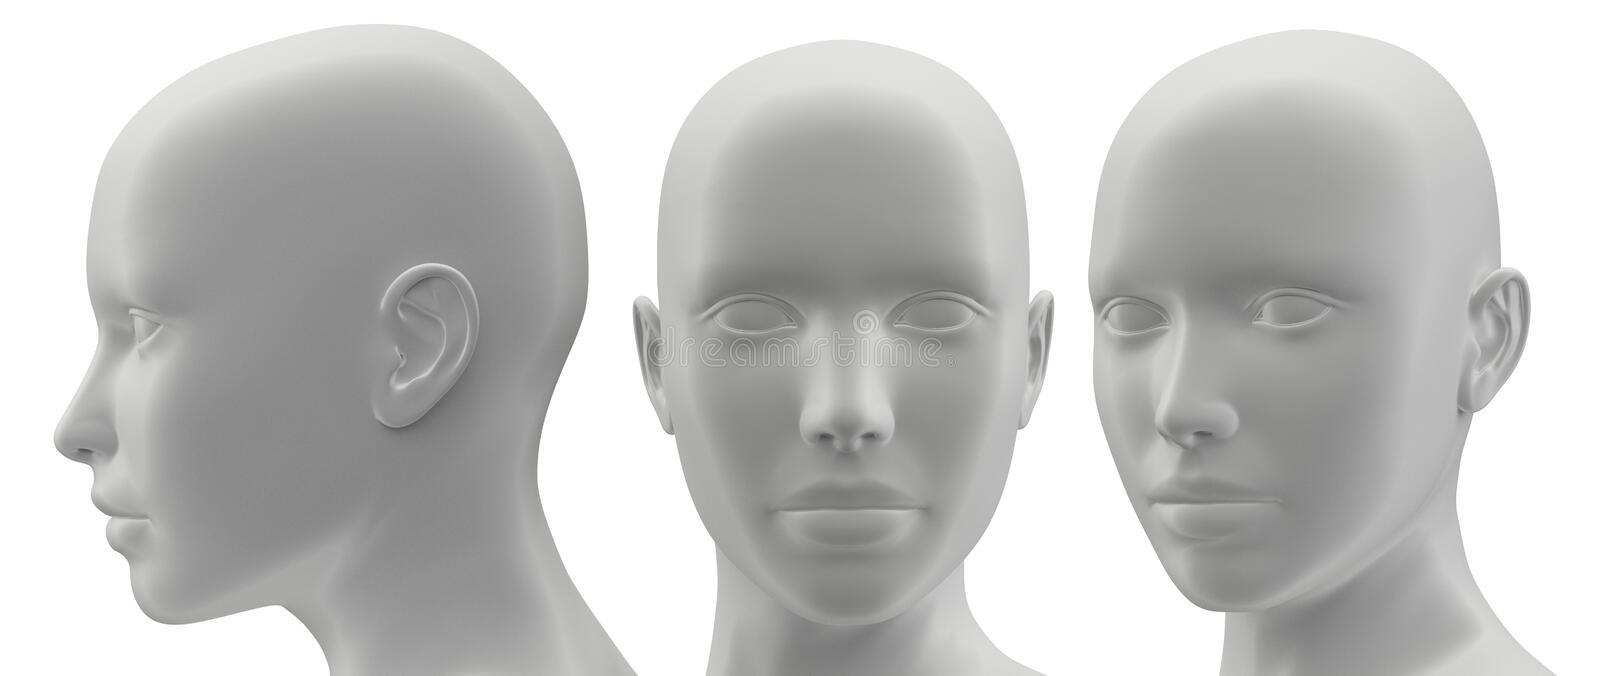 3d rendering illustration of face human collection. Body, male, system, anatomy, health, white, full, medical, science, isolated, lymph, blue, background royalty free illustration